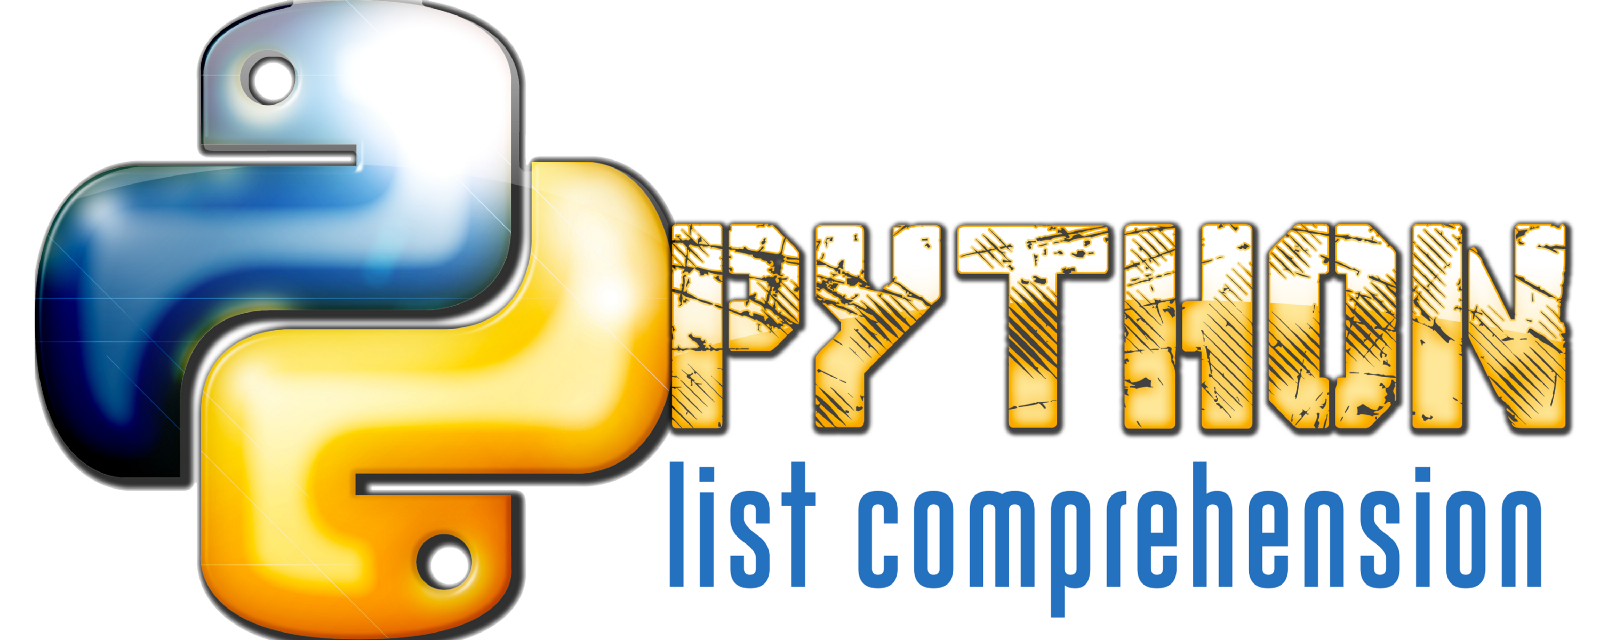 List Comprehension in Python - By